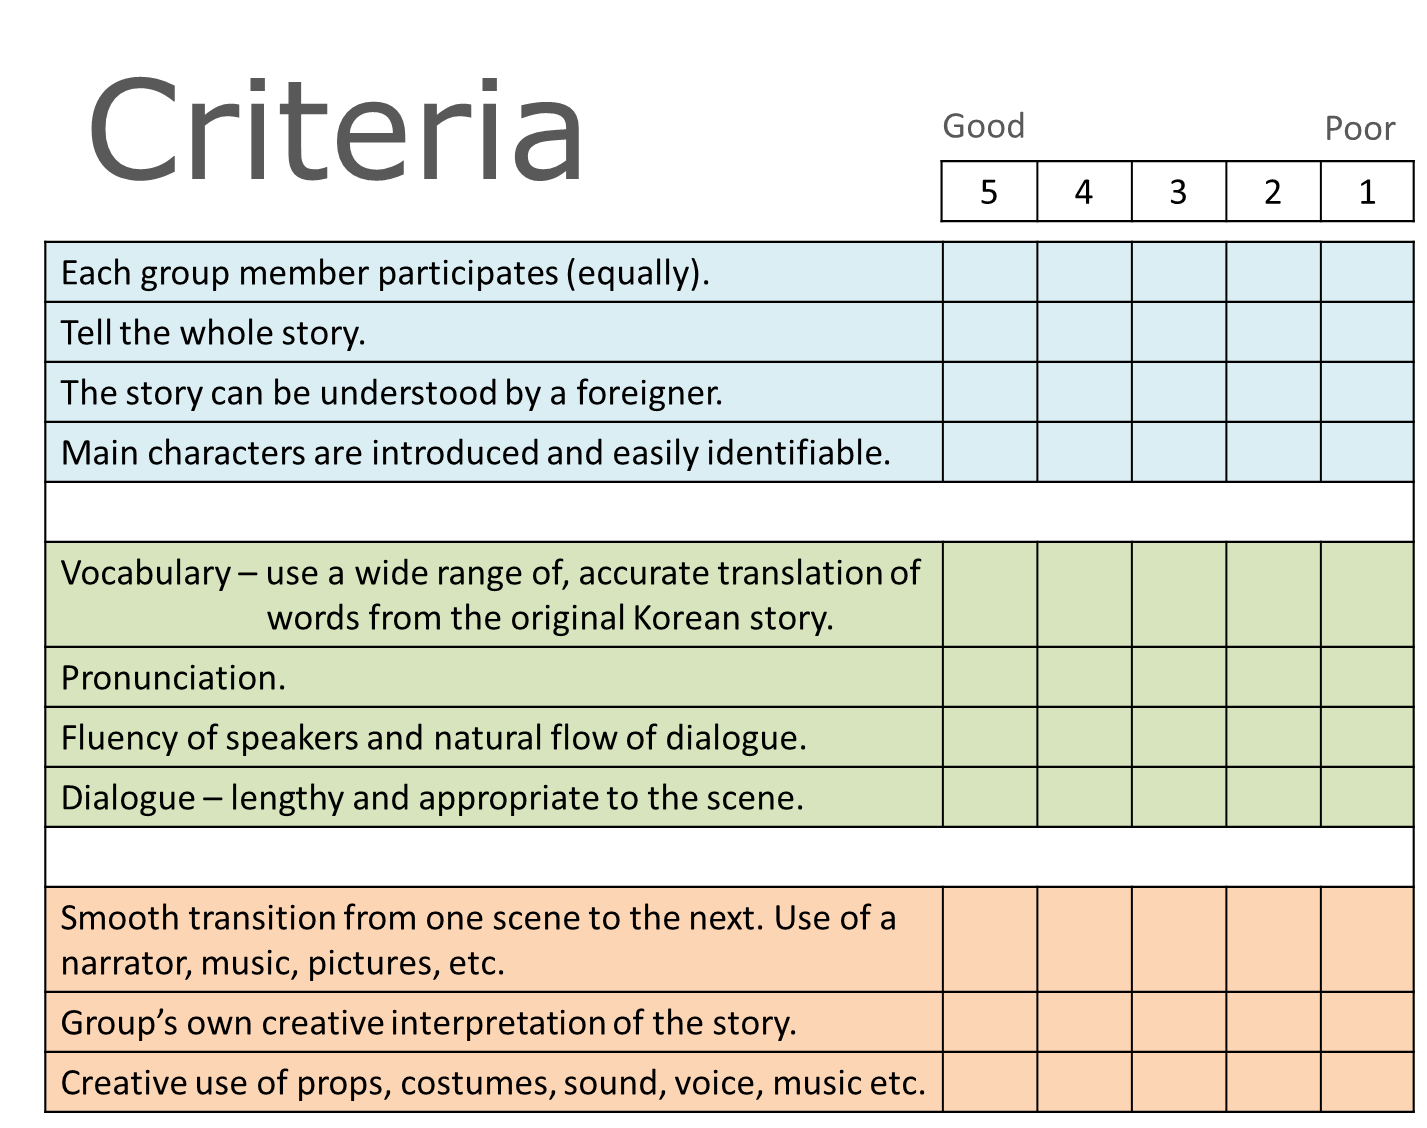 criteria for judging photo essay